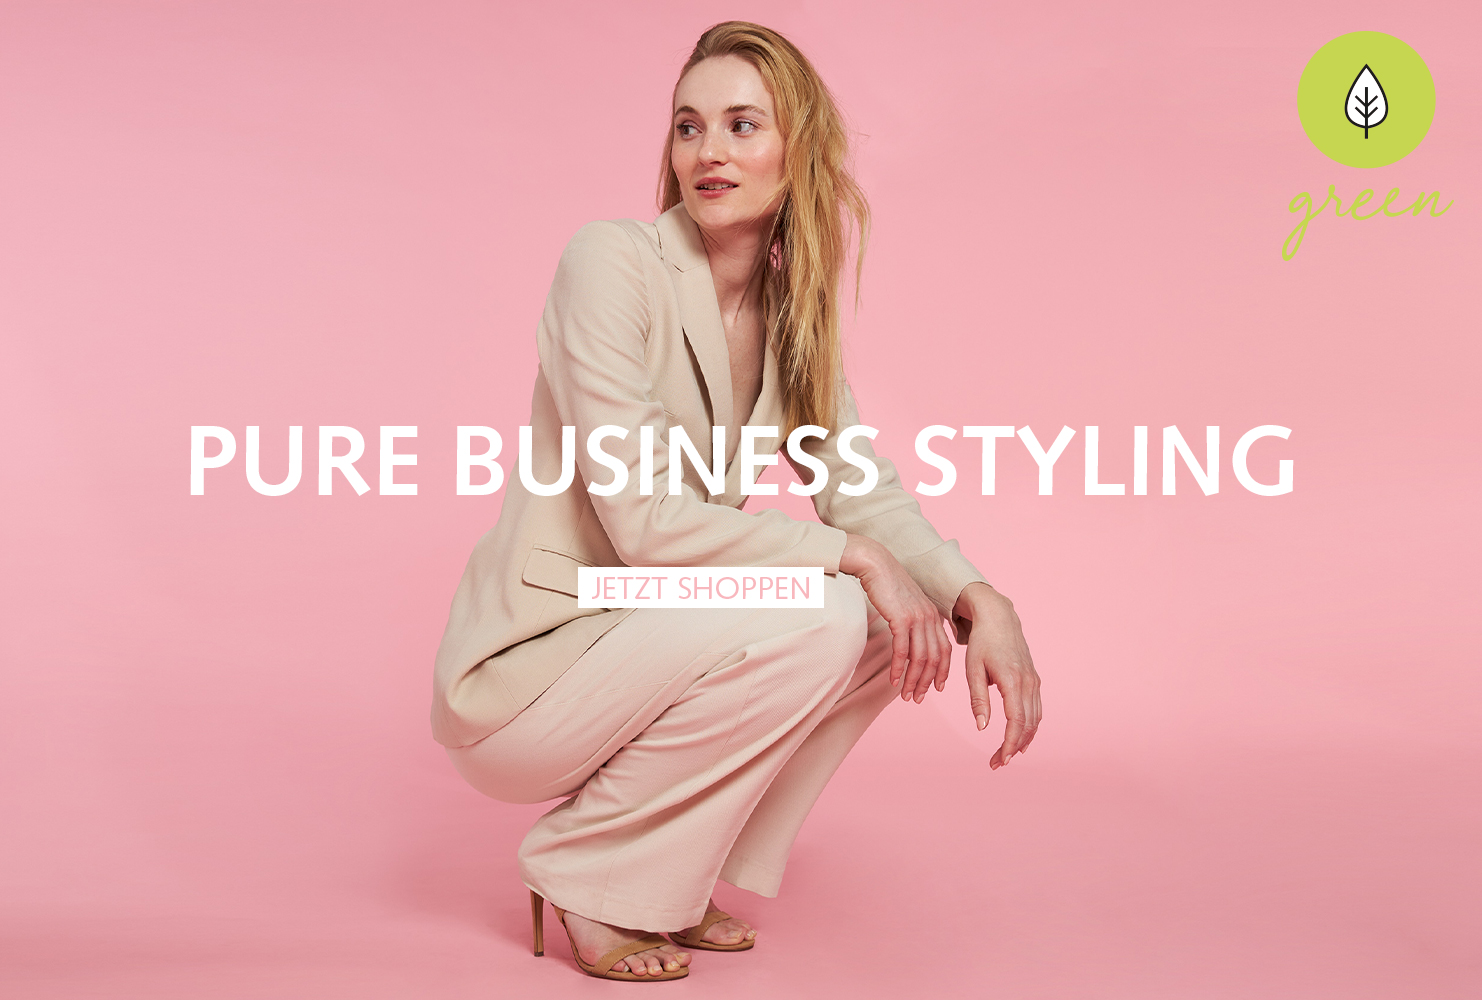 Pure Business Styling